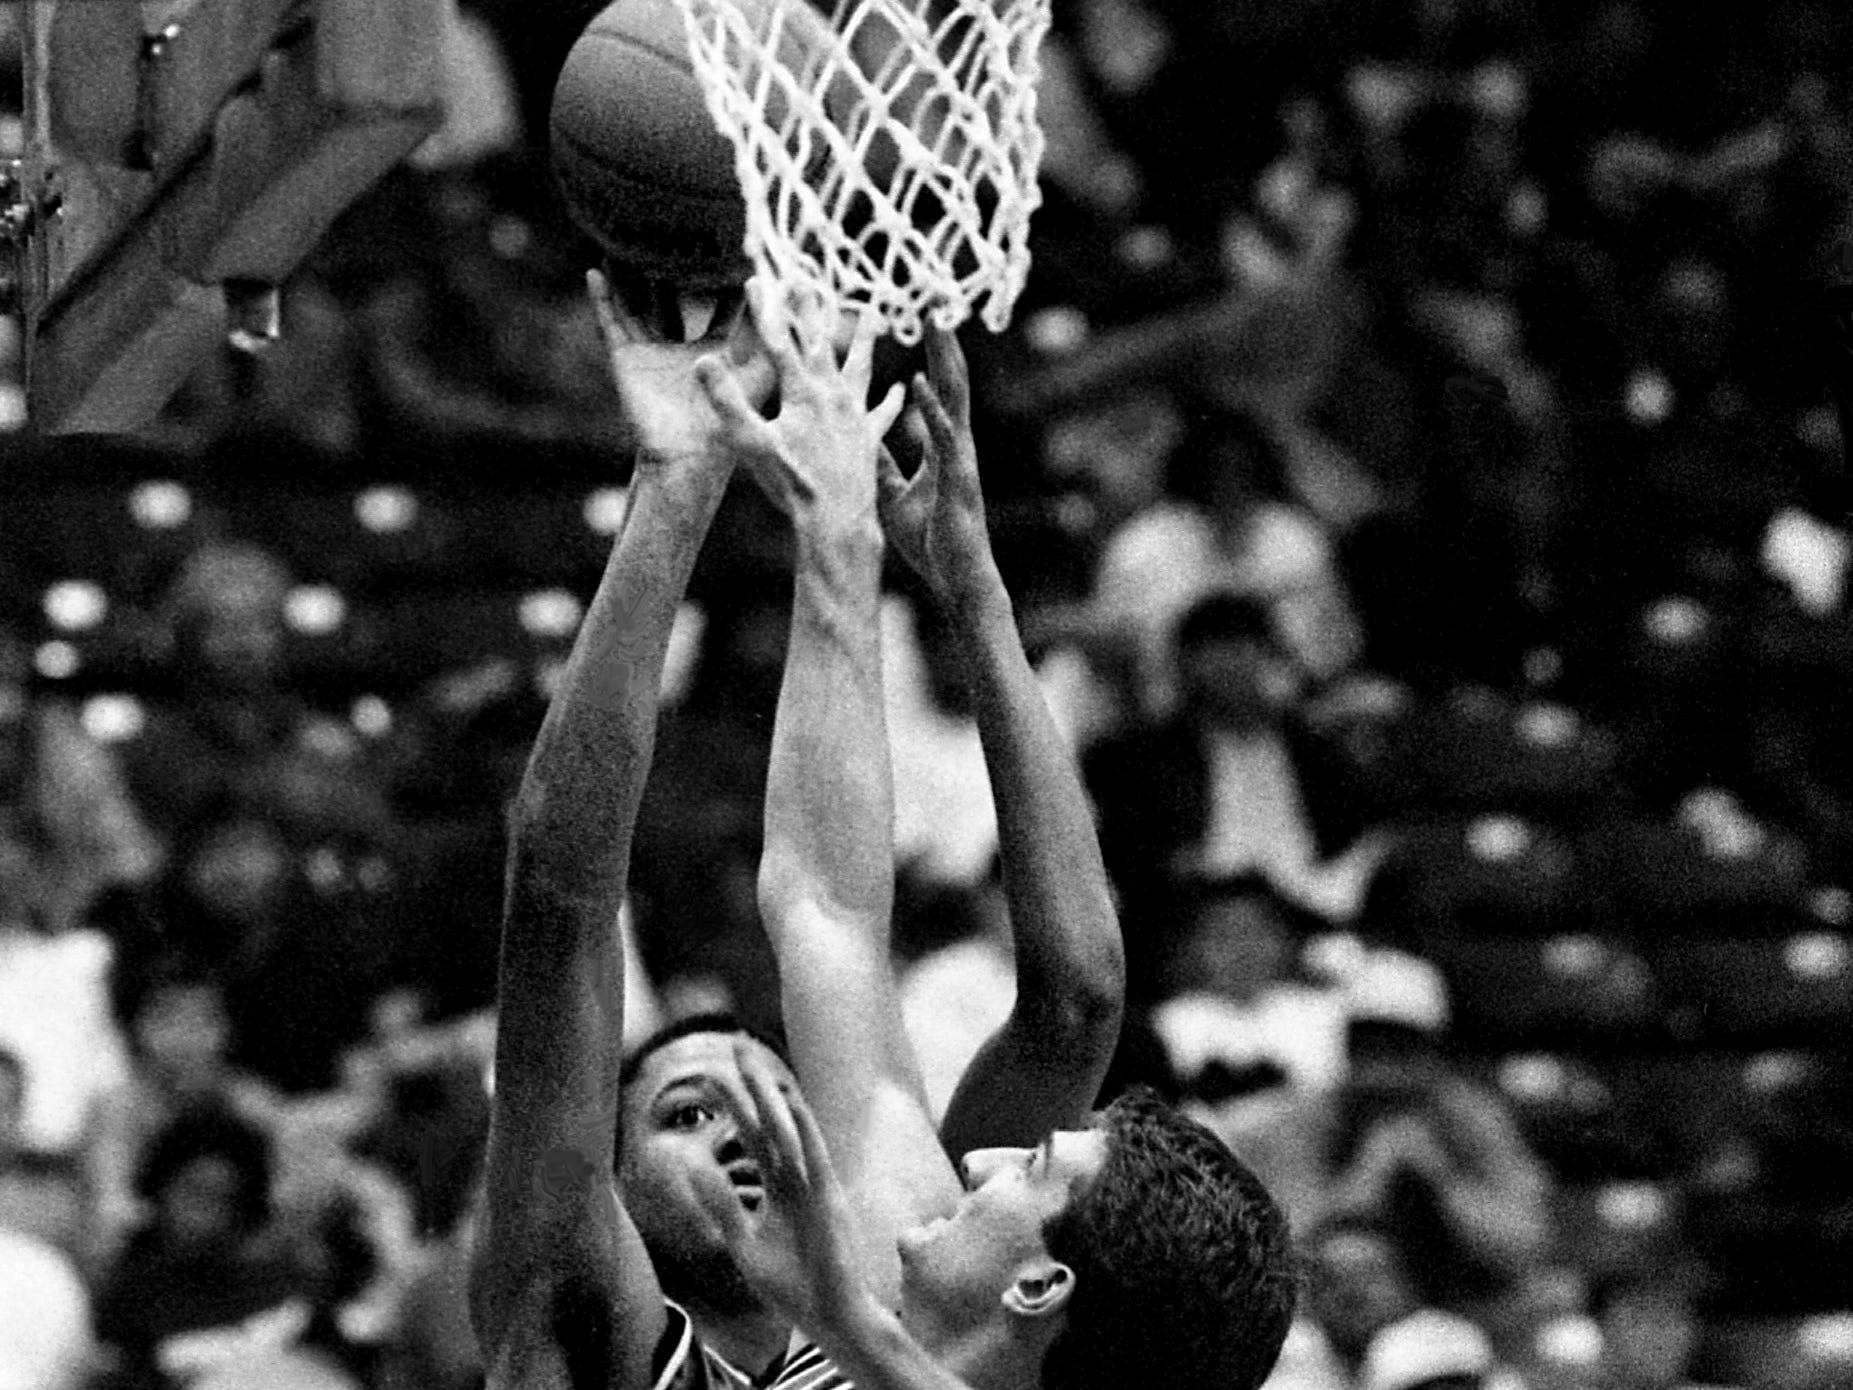 Whites Creek High's Corey Allen attempts to shoot despite the defense pressure from Franklin High guard Kevin Anglin. Allen scored 13 points for Whites Creek, but Anglin scored 25 for Franklin to win the TSSAA Class AAA title 43-42 at MTSU's Murphy Center in Murfreesboro on March 18, 1989.